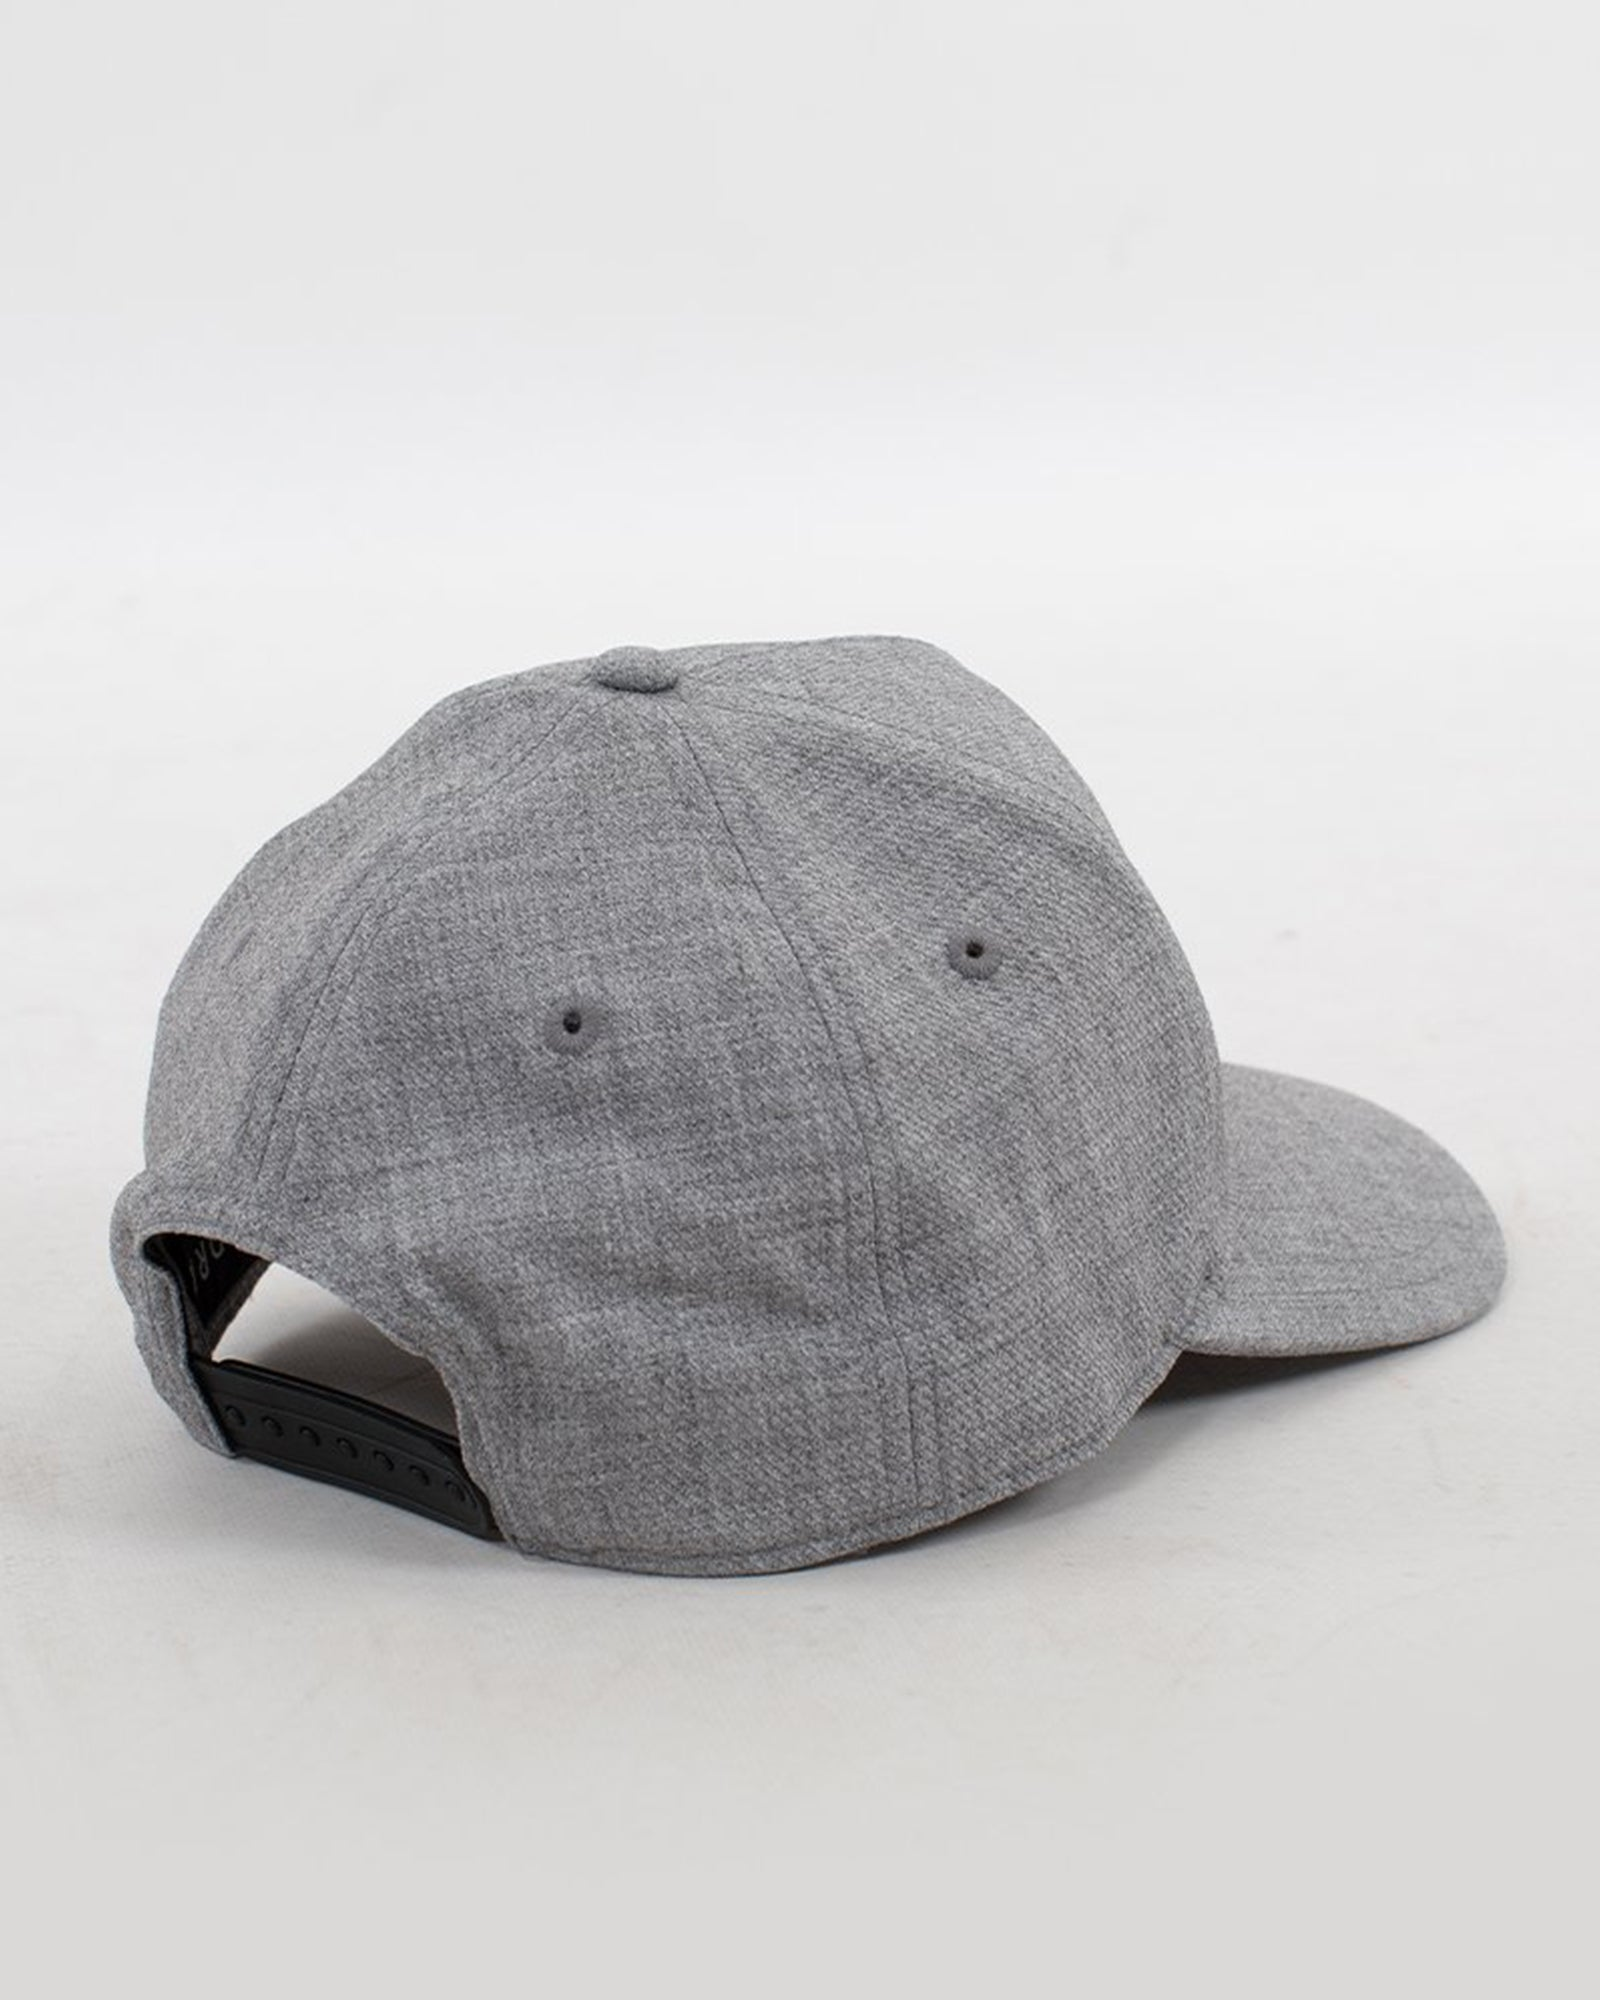 Wndrr Phillips High Rise Cap - Grey Marle